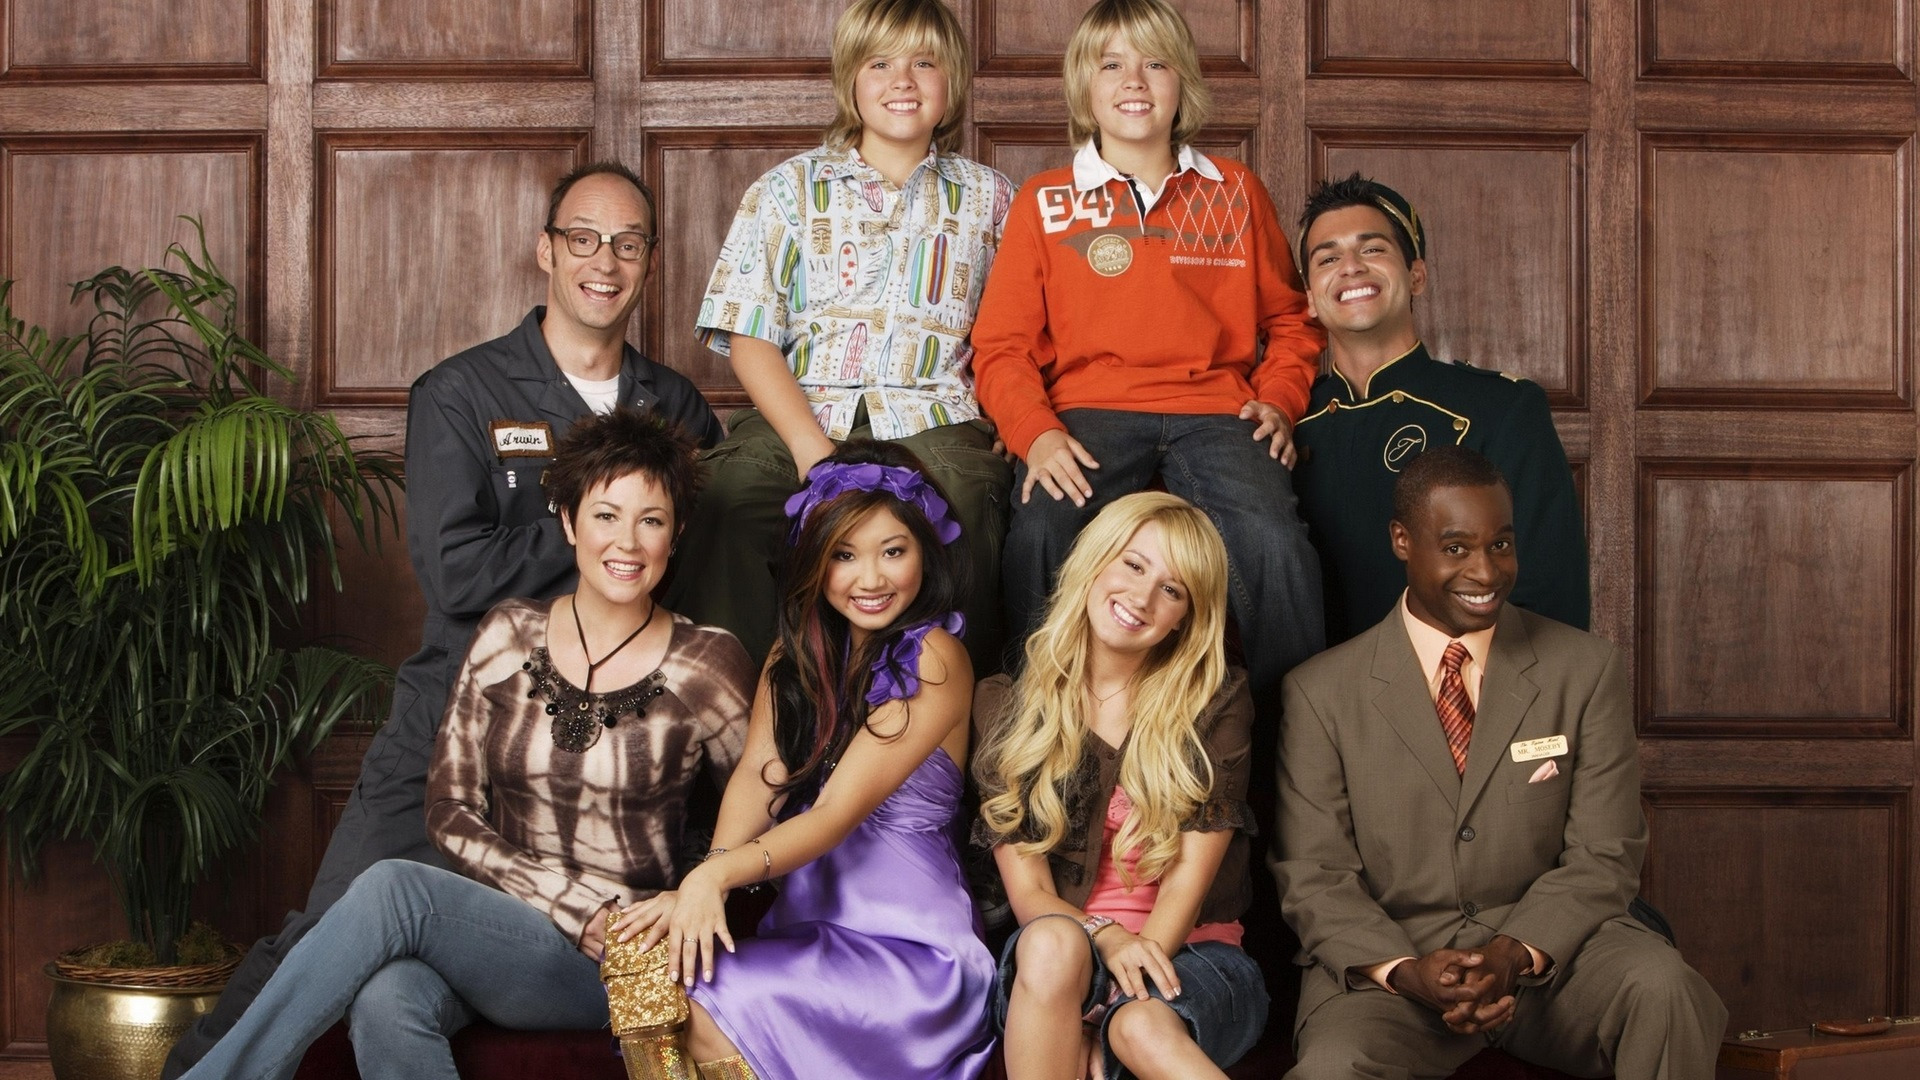 Show The Suite Life of Zack and Cody